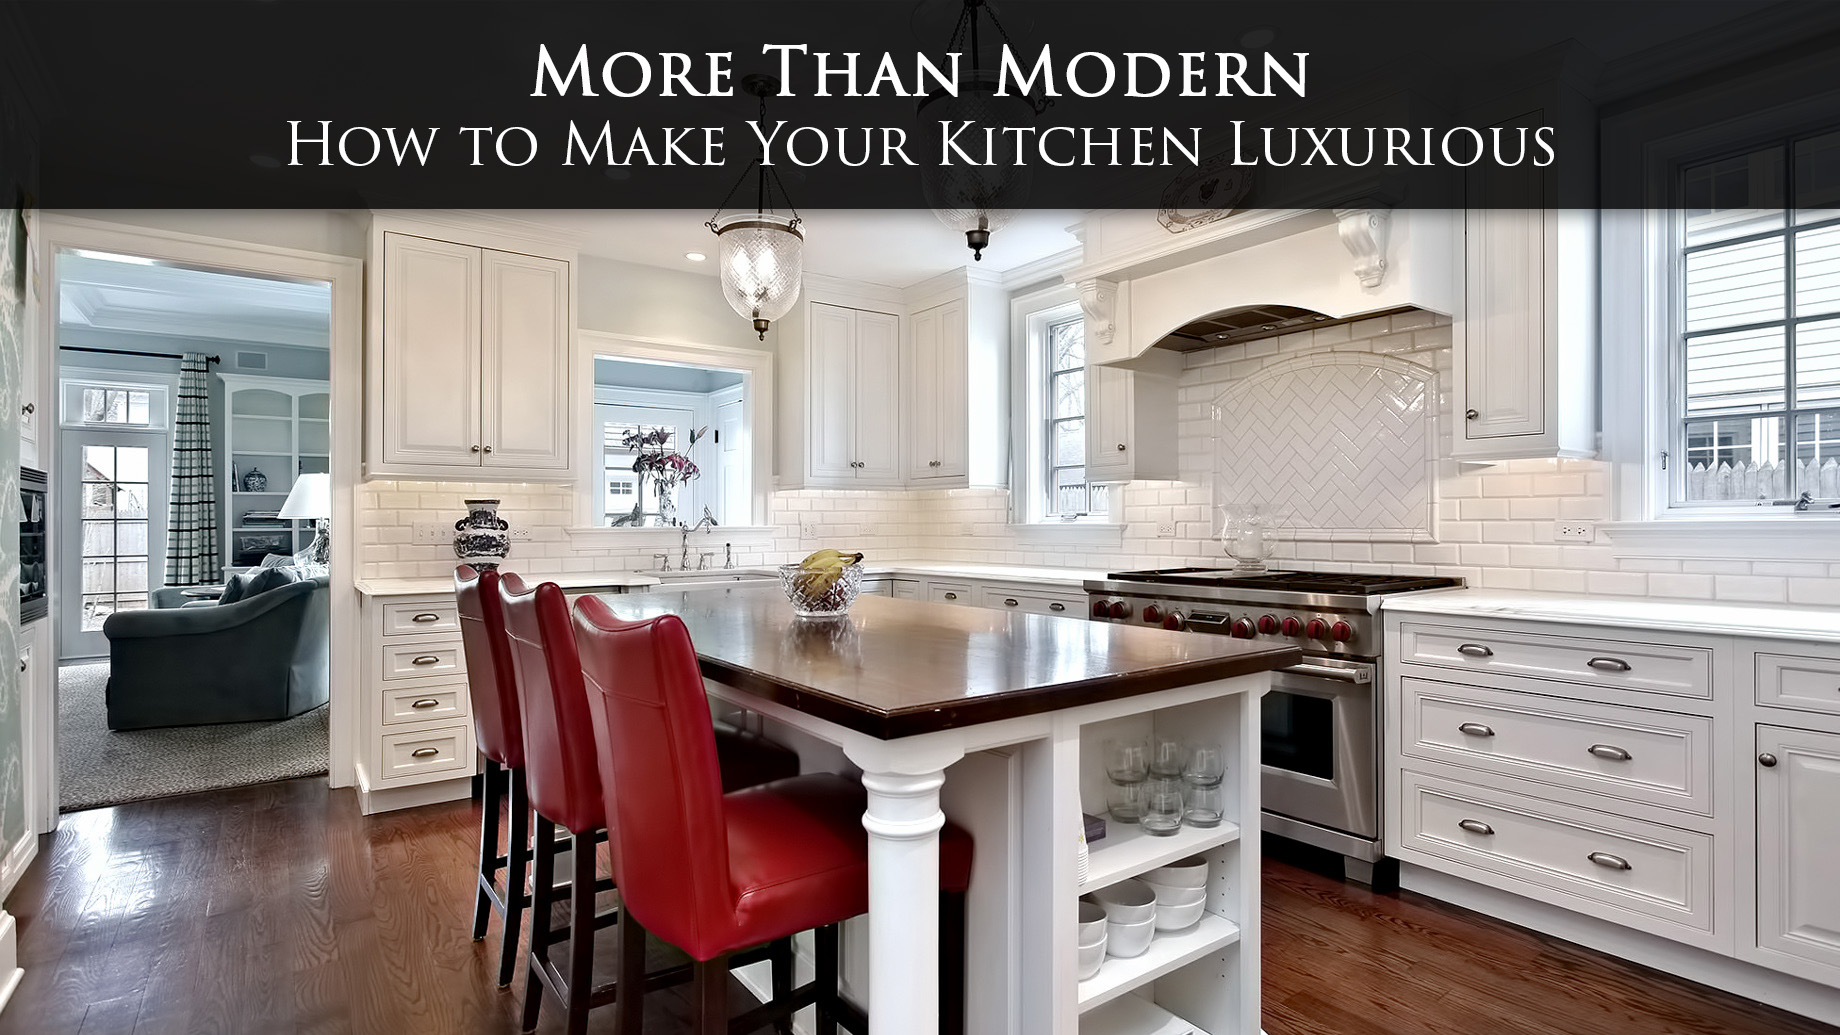 More Than Modern - How to Make Your Kitchen Luxurious